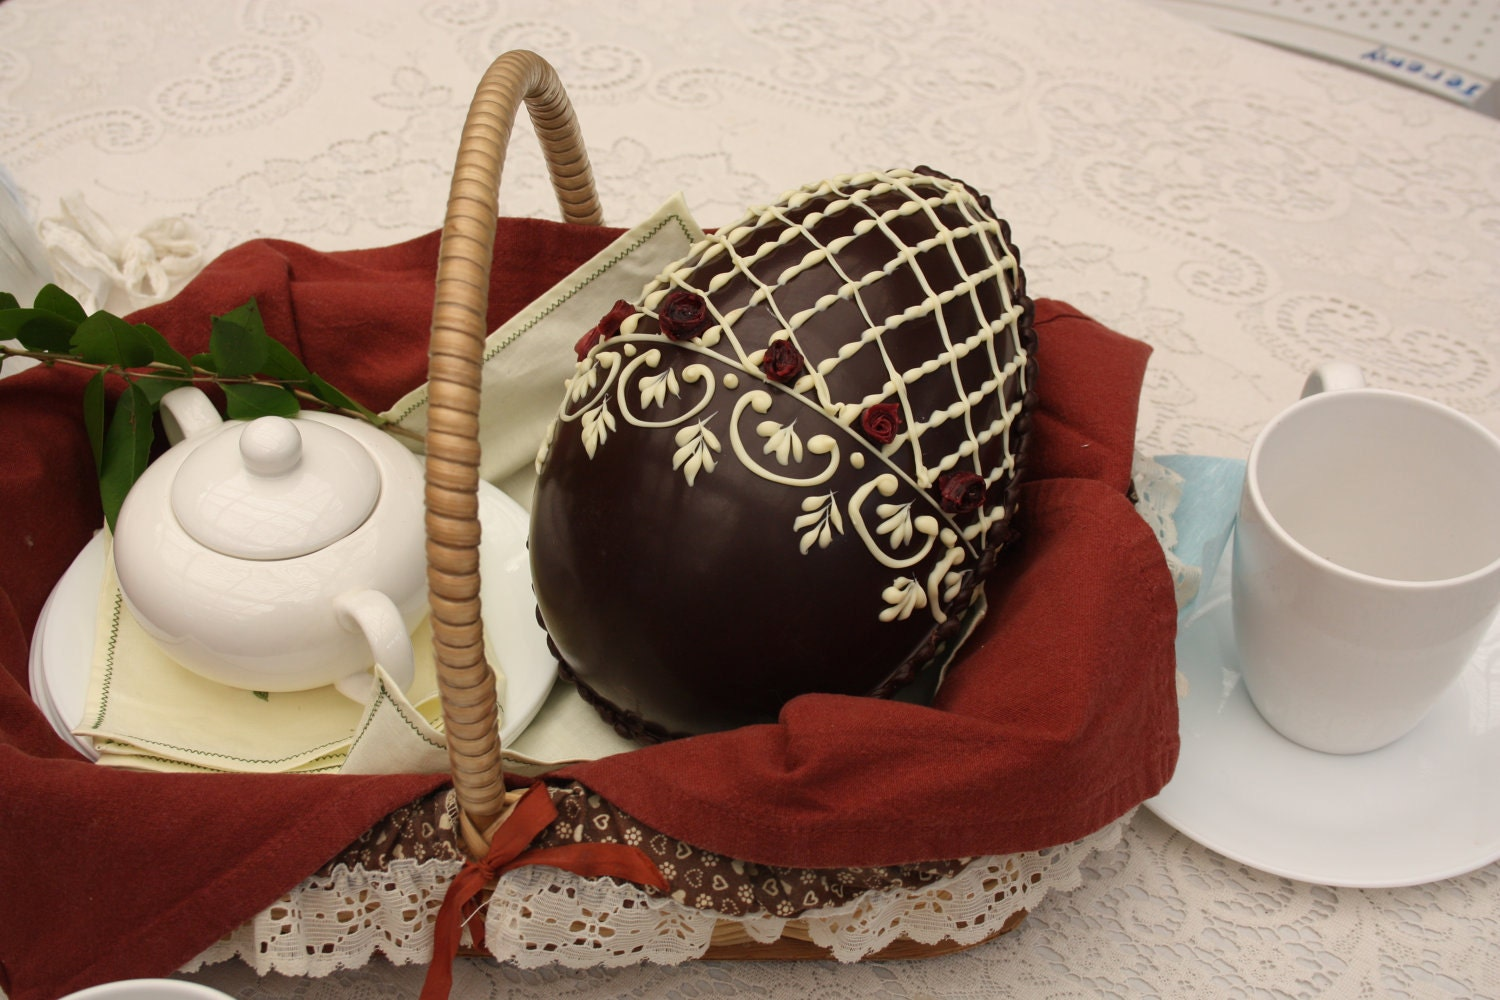 Large Chocolate Easter Egg - hand decorated - dark and white chocolate